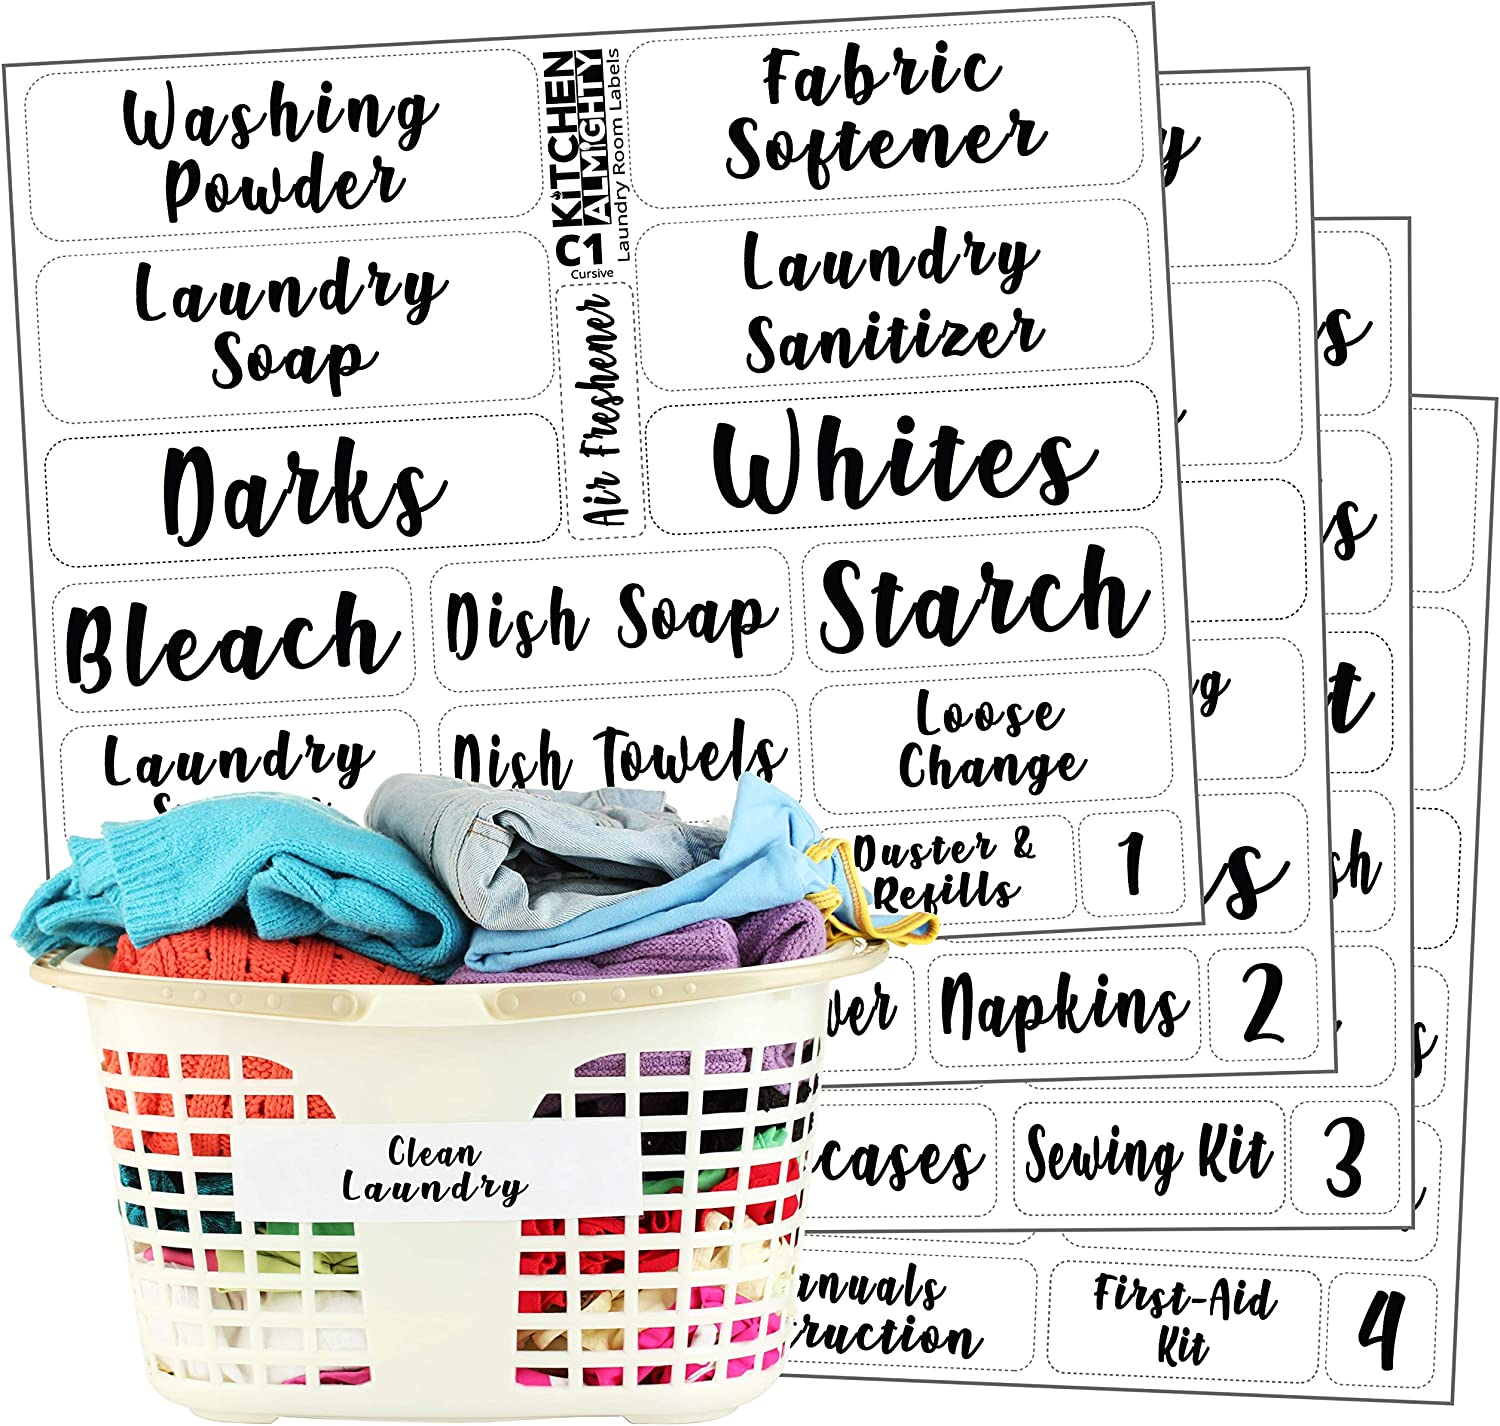 Laundry Room Organization Clear Labels: 85 Attractive Feminine Gloss Preprinted Water Resistant Label Set to Organize Laundry w/Extra Write-on Stickers